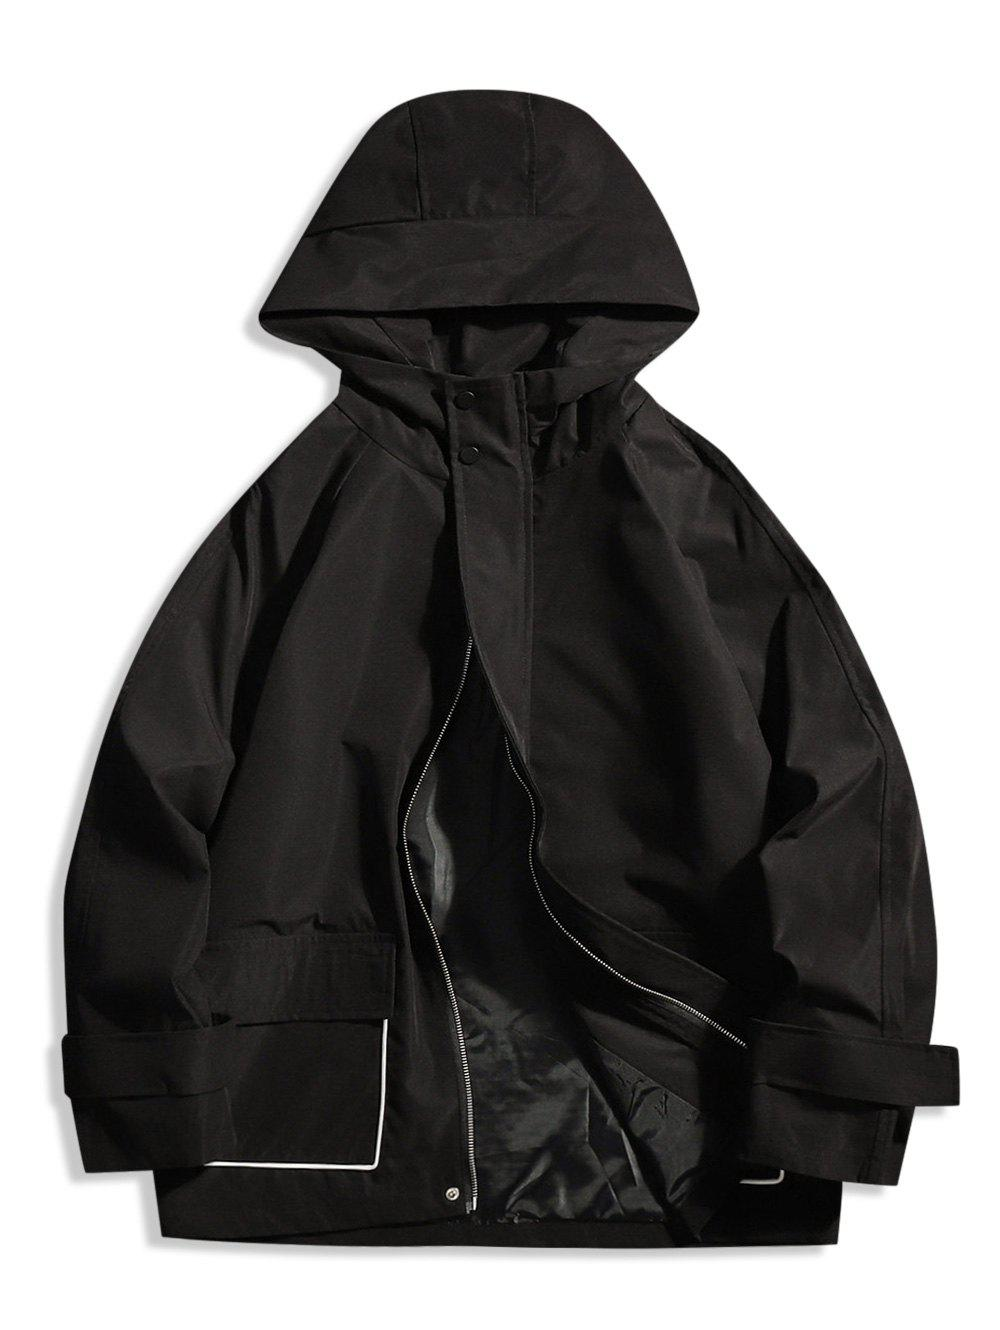 Contrast Piped Hooded Zip Up Jacket - BLACK M